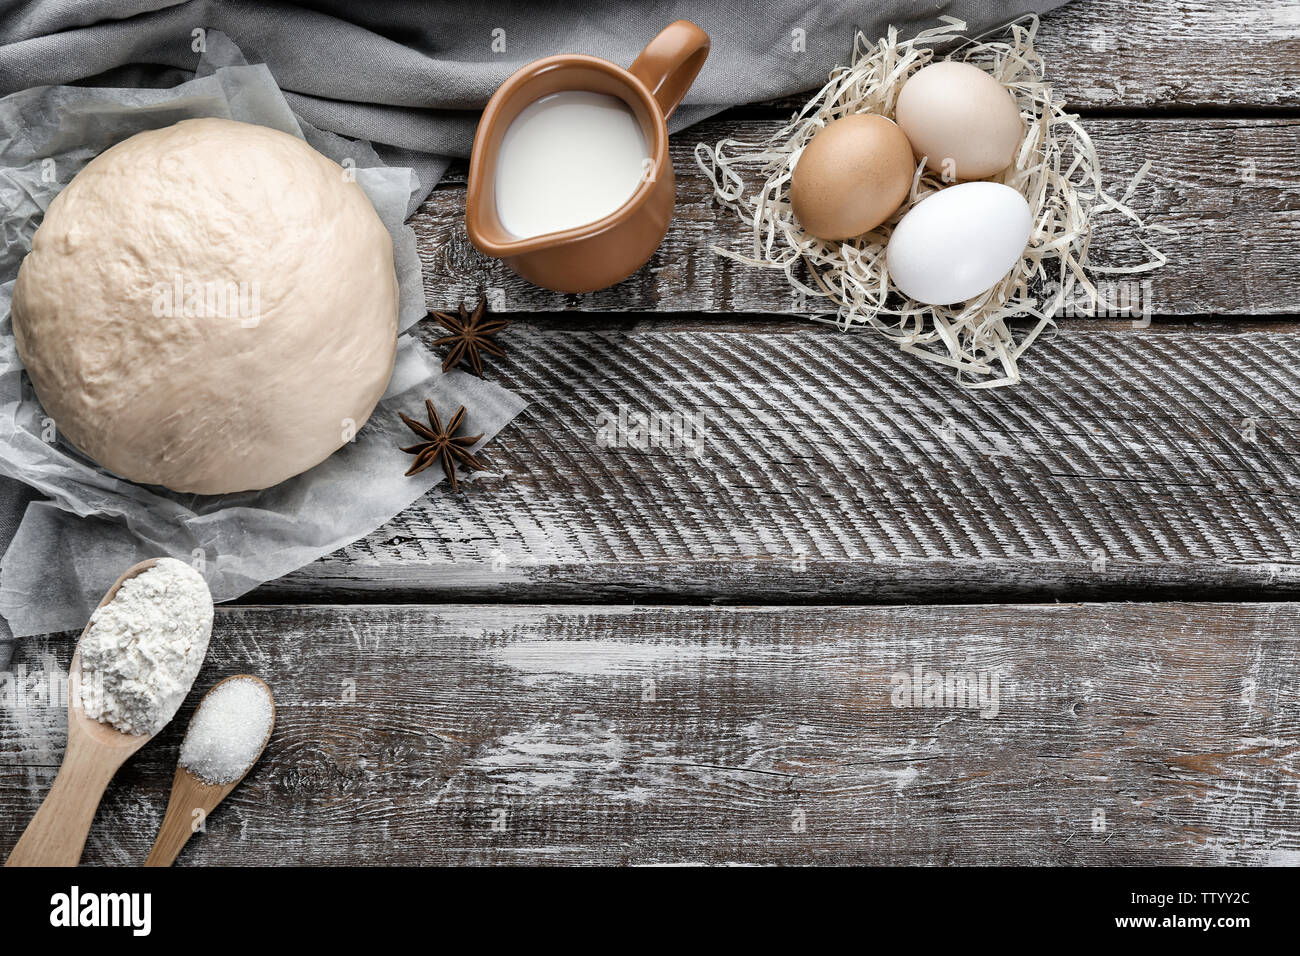 Fresh dough, eggs and milk on wooden background - Stock Image